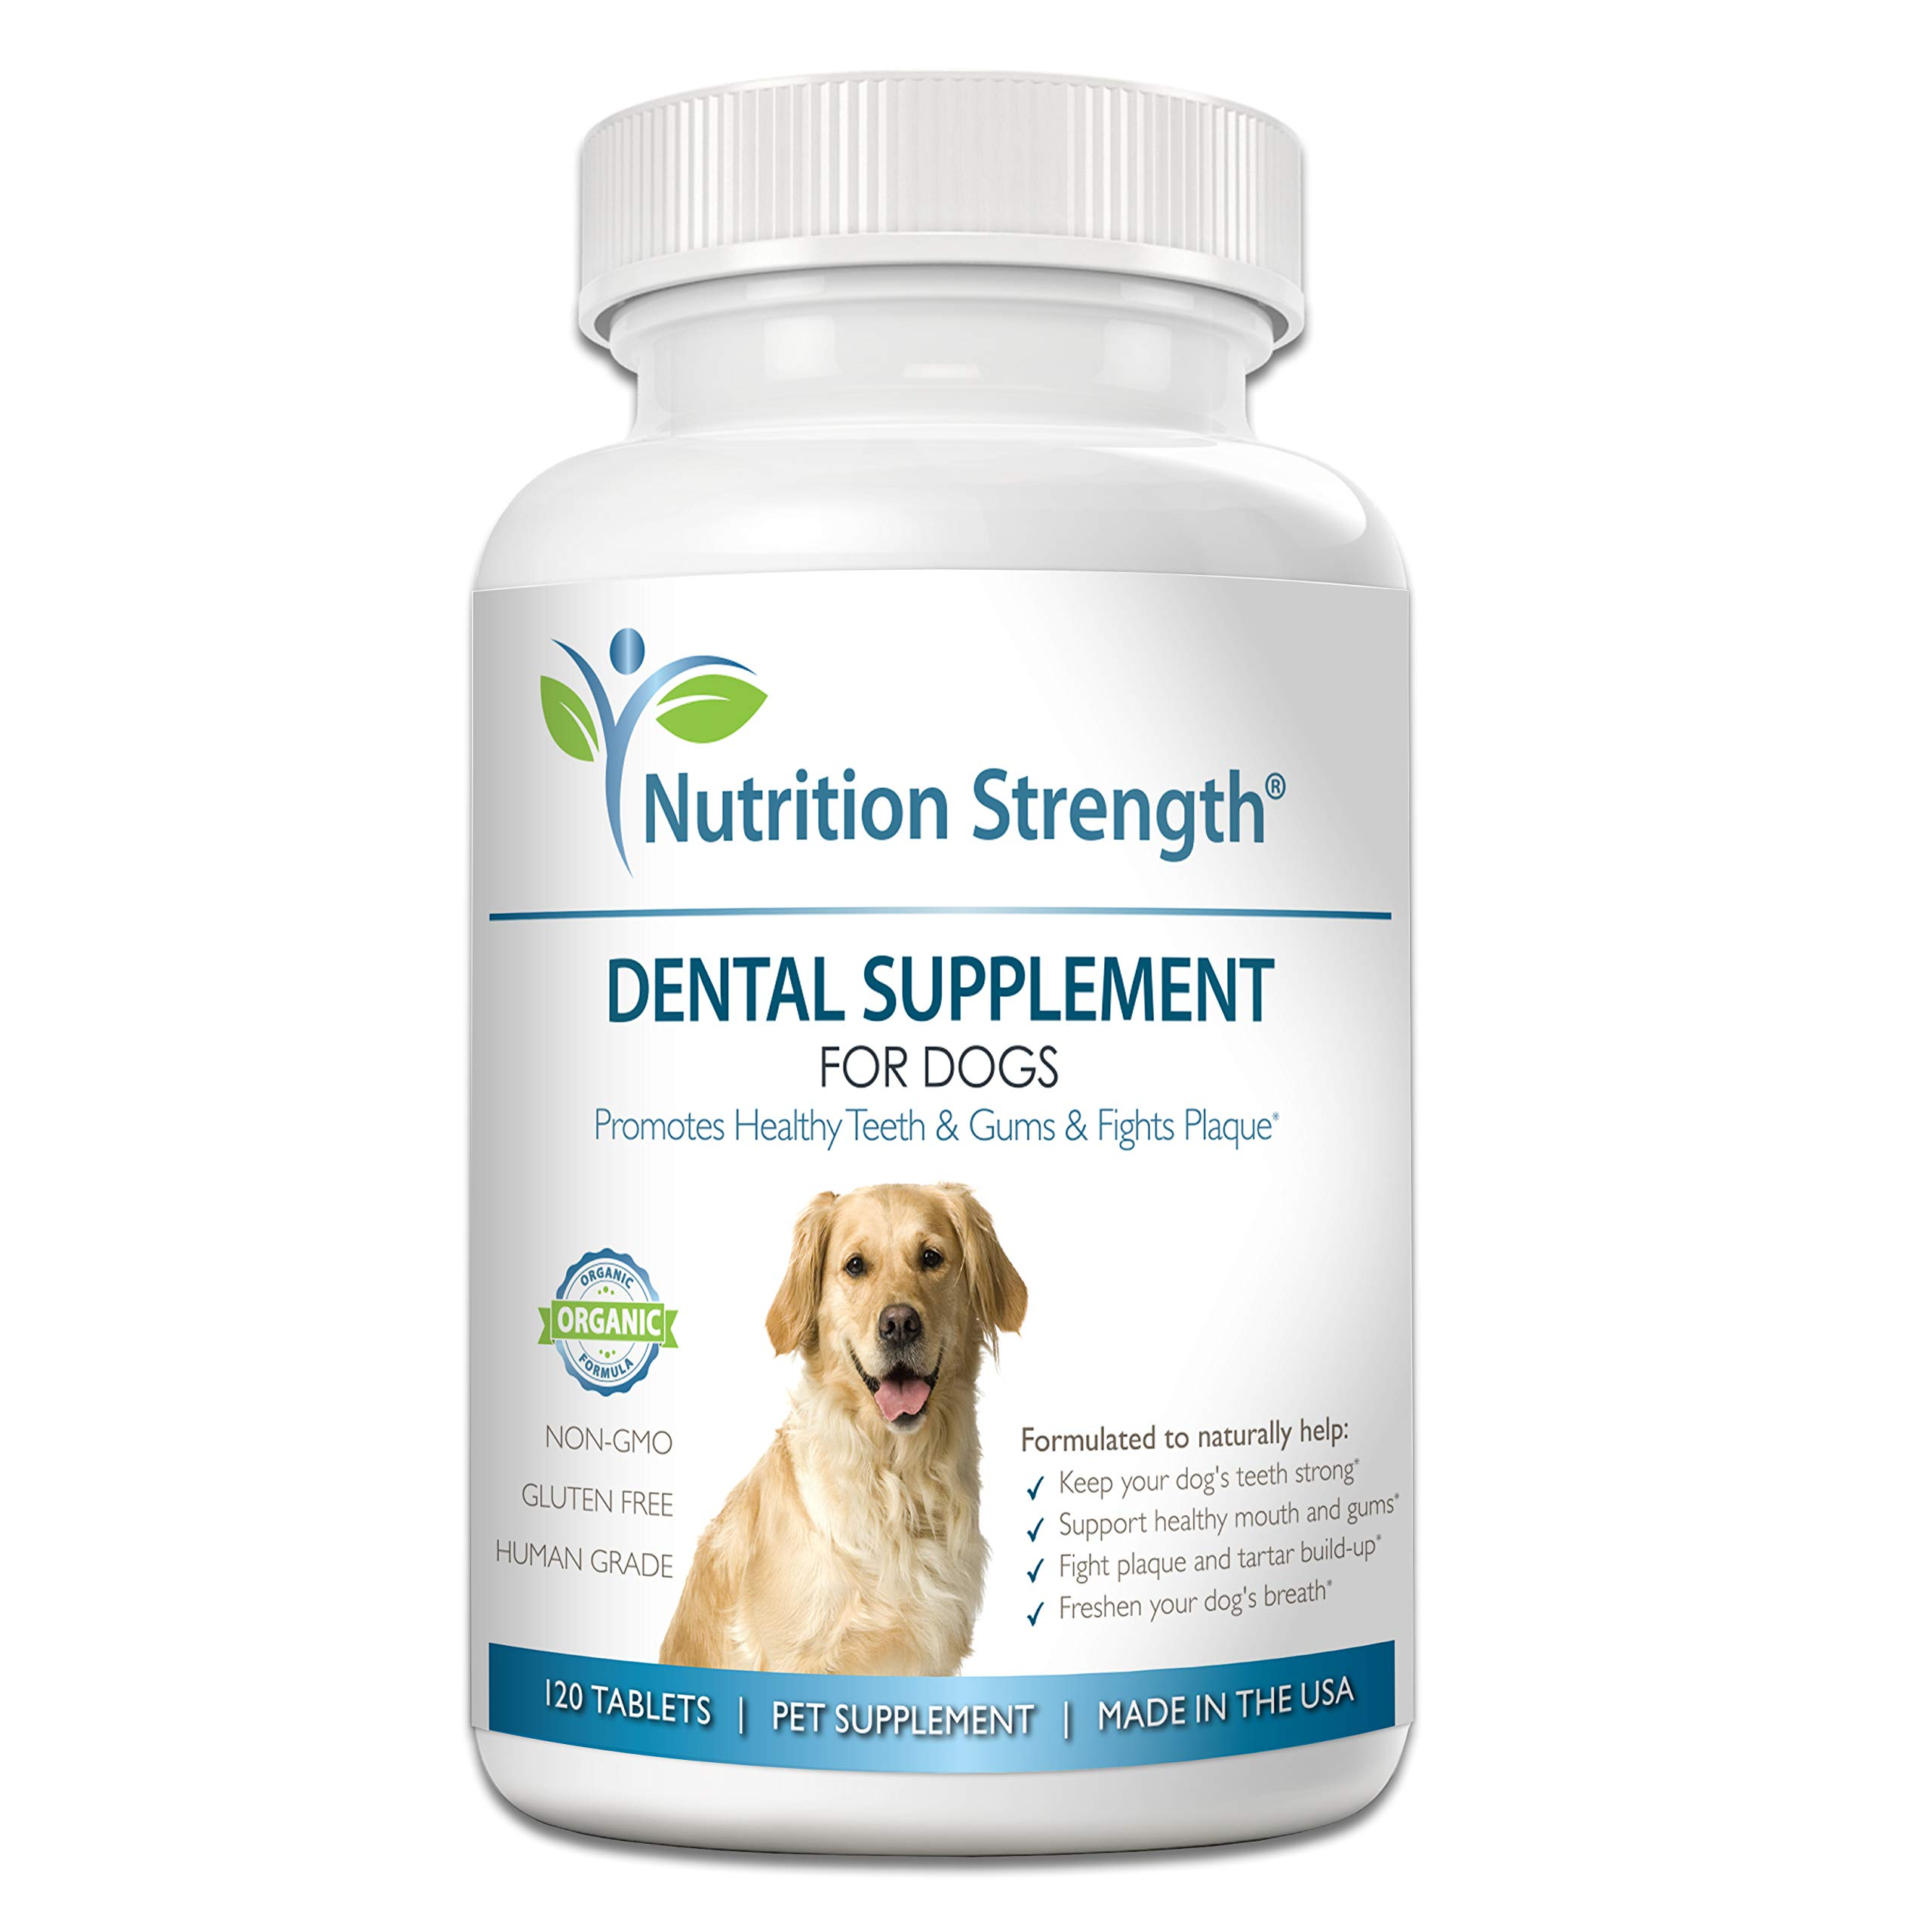 Nutrition Strength Dental Care for Dogs, Daily Supplement for Healthy Dog Gums and Teeth with Organic Kelp, Strawberry Leaf, Pumpkin Seed for Dog Mouth and Teeth Cleaning, 120 Chewable Tablets by Nutrition Strength